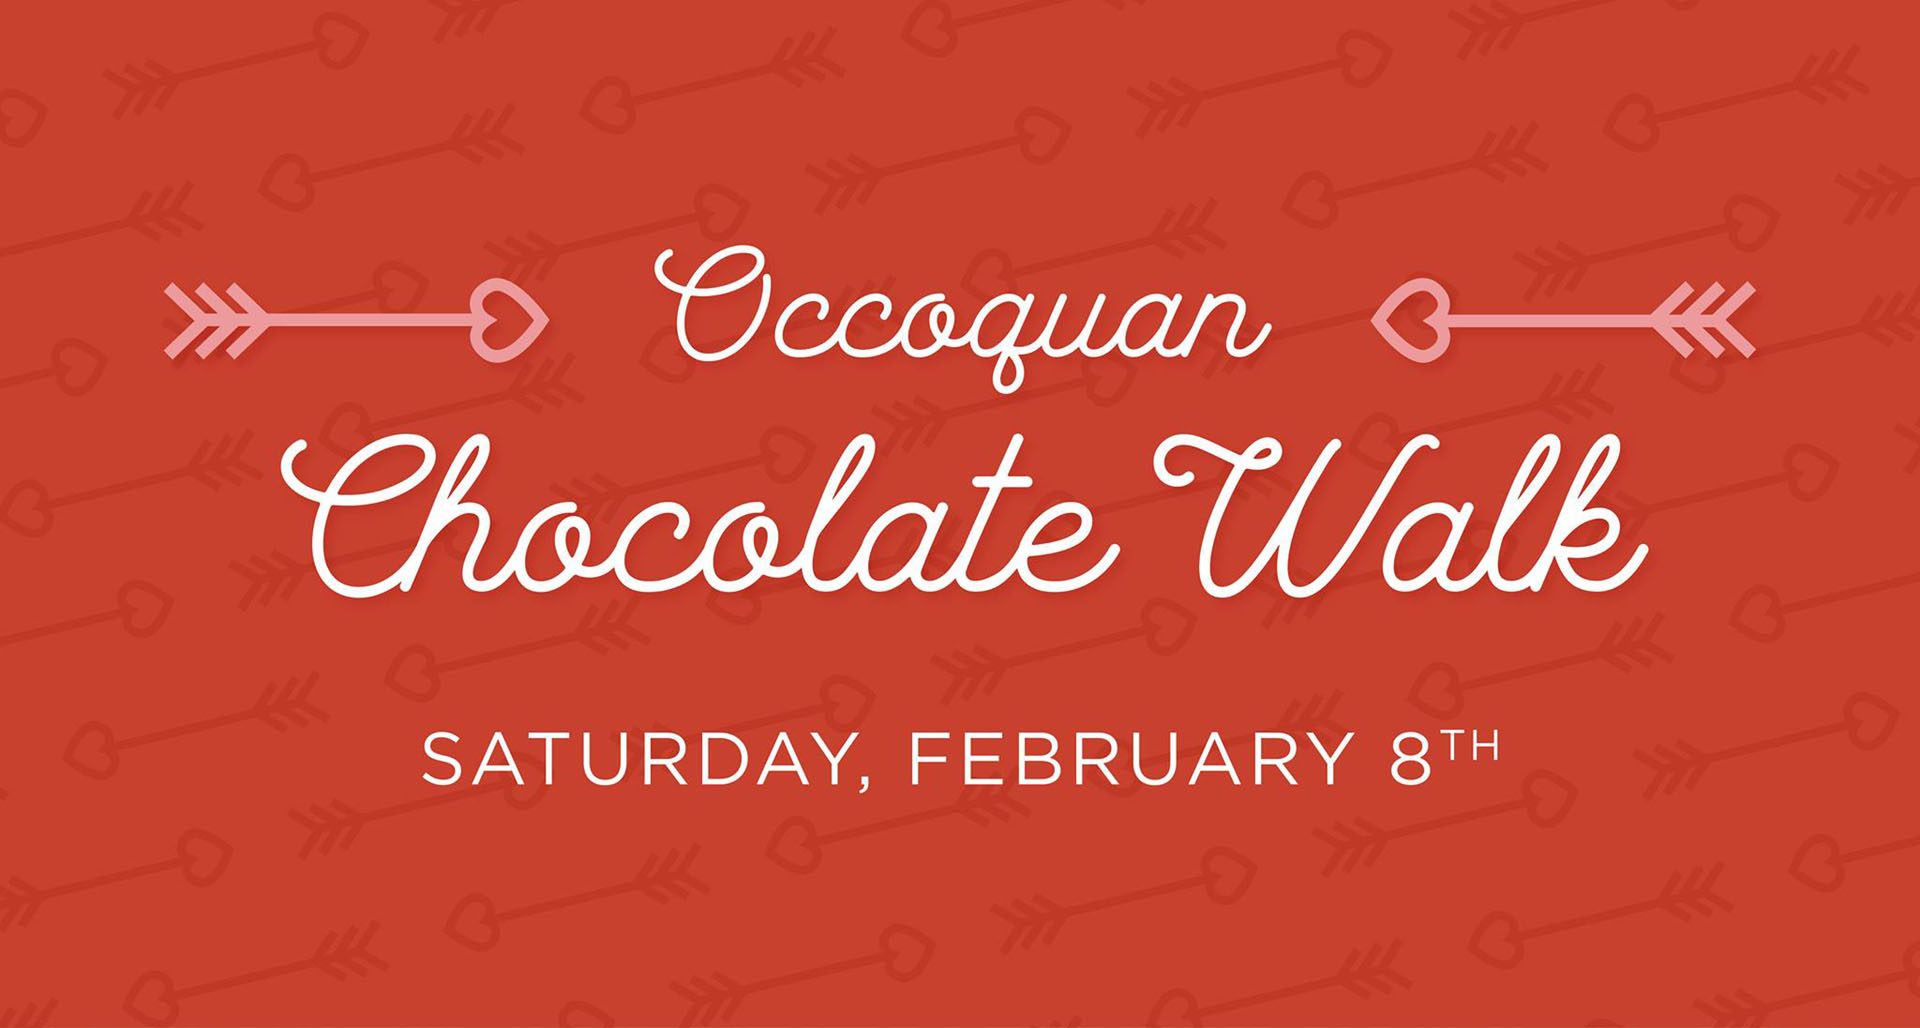 Occoquan Chocolate Walk scheduled for Feb. 8